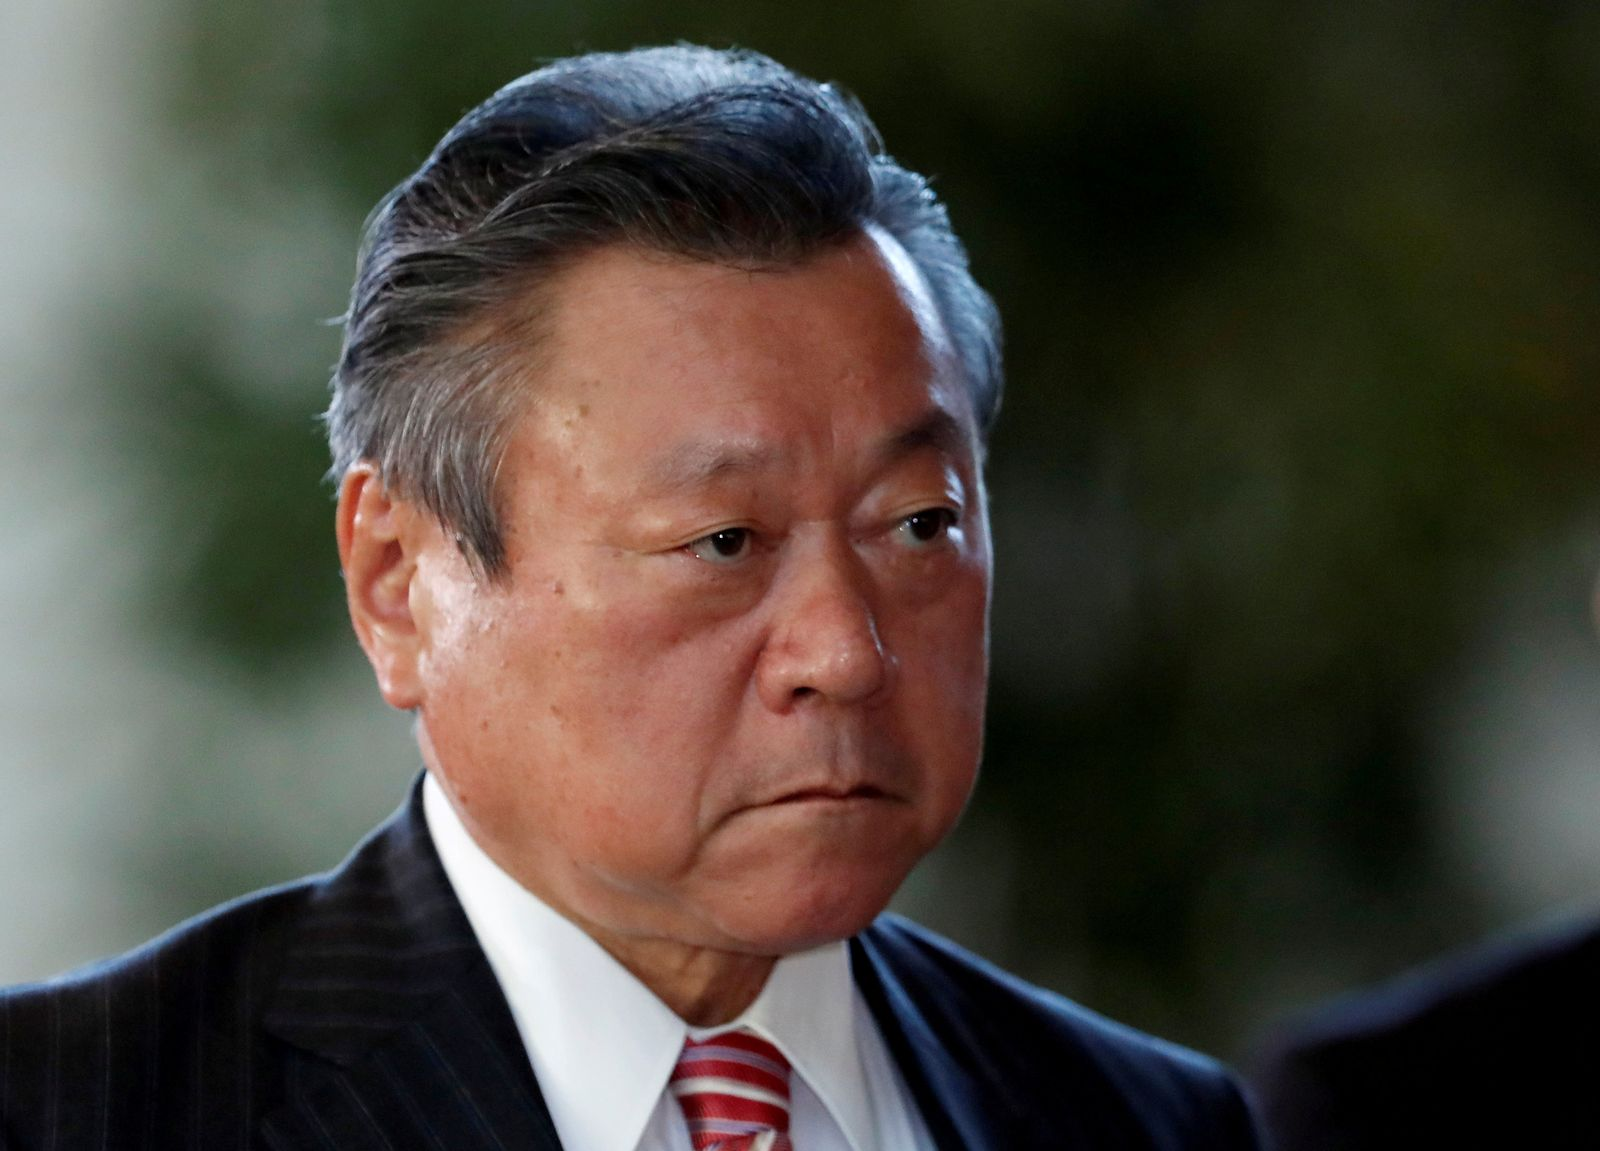 JAPAN-OLYMPICS/CYBERSECURITY-MINISTER